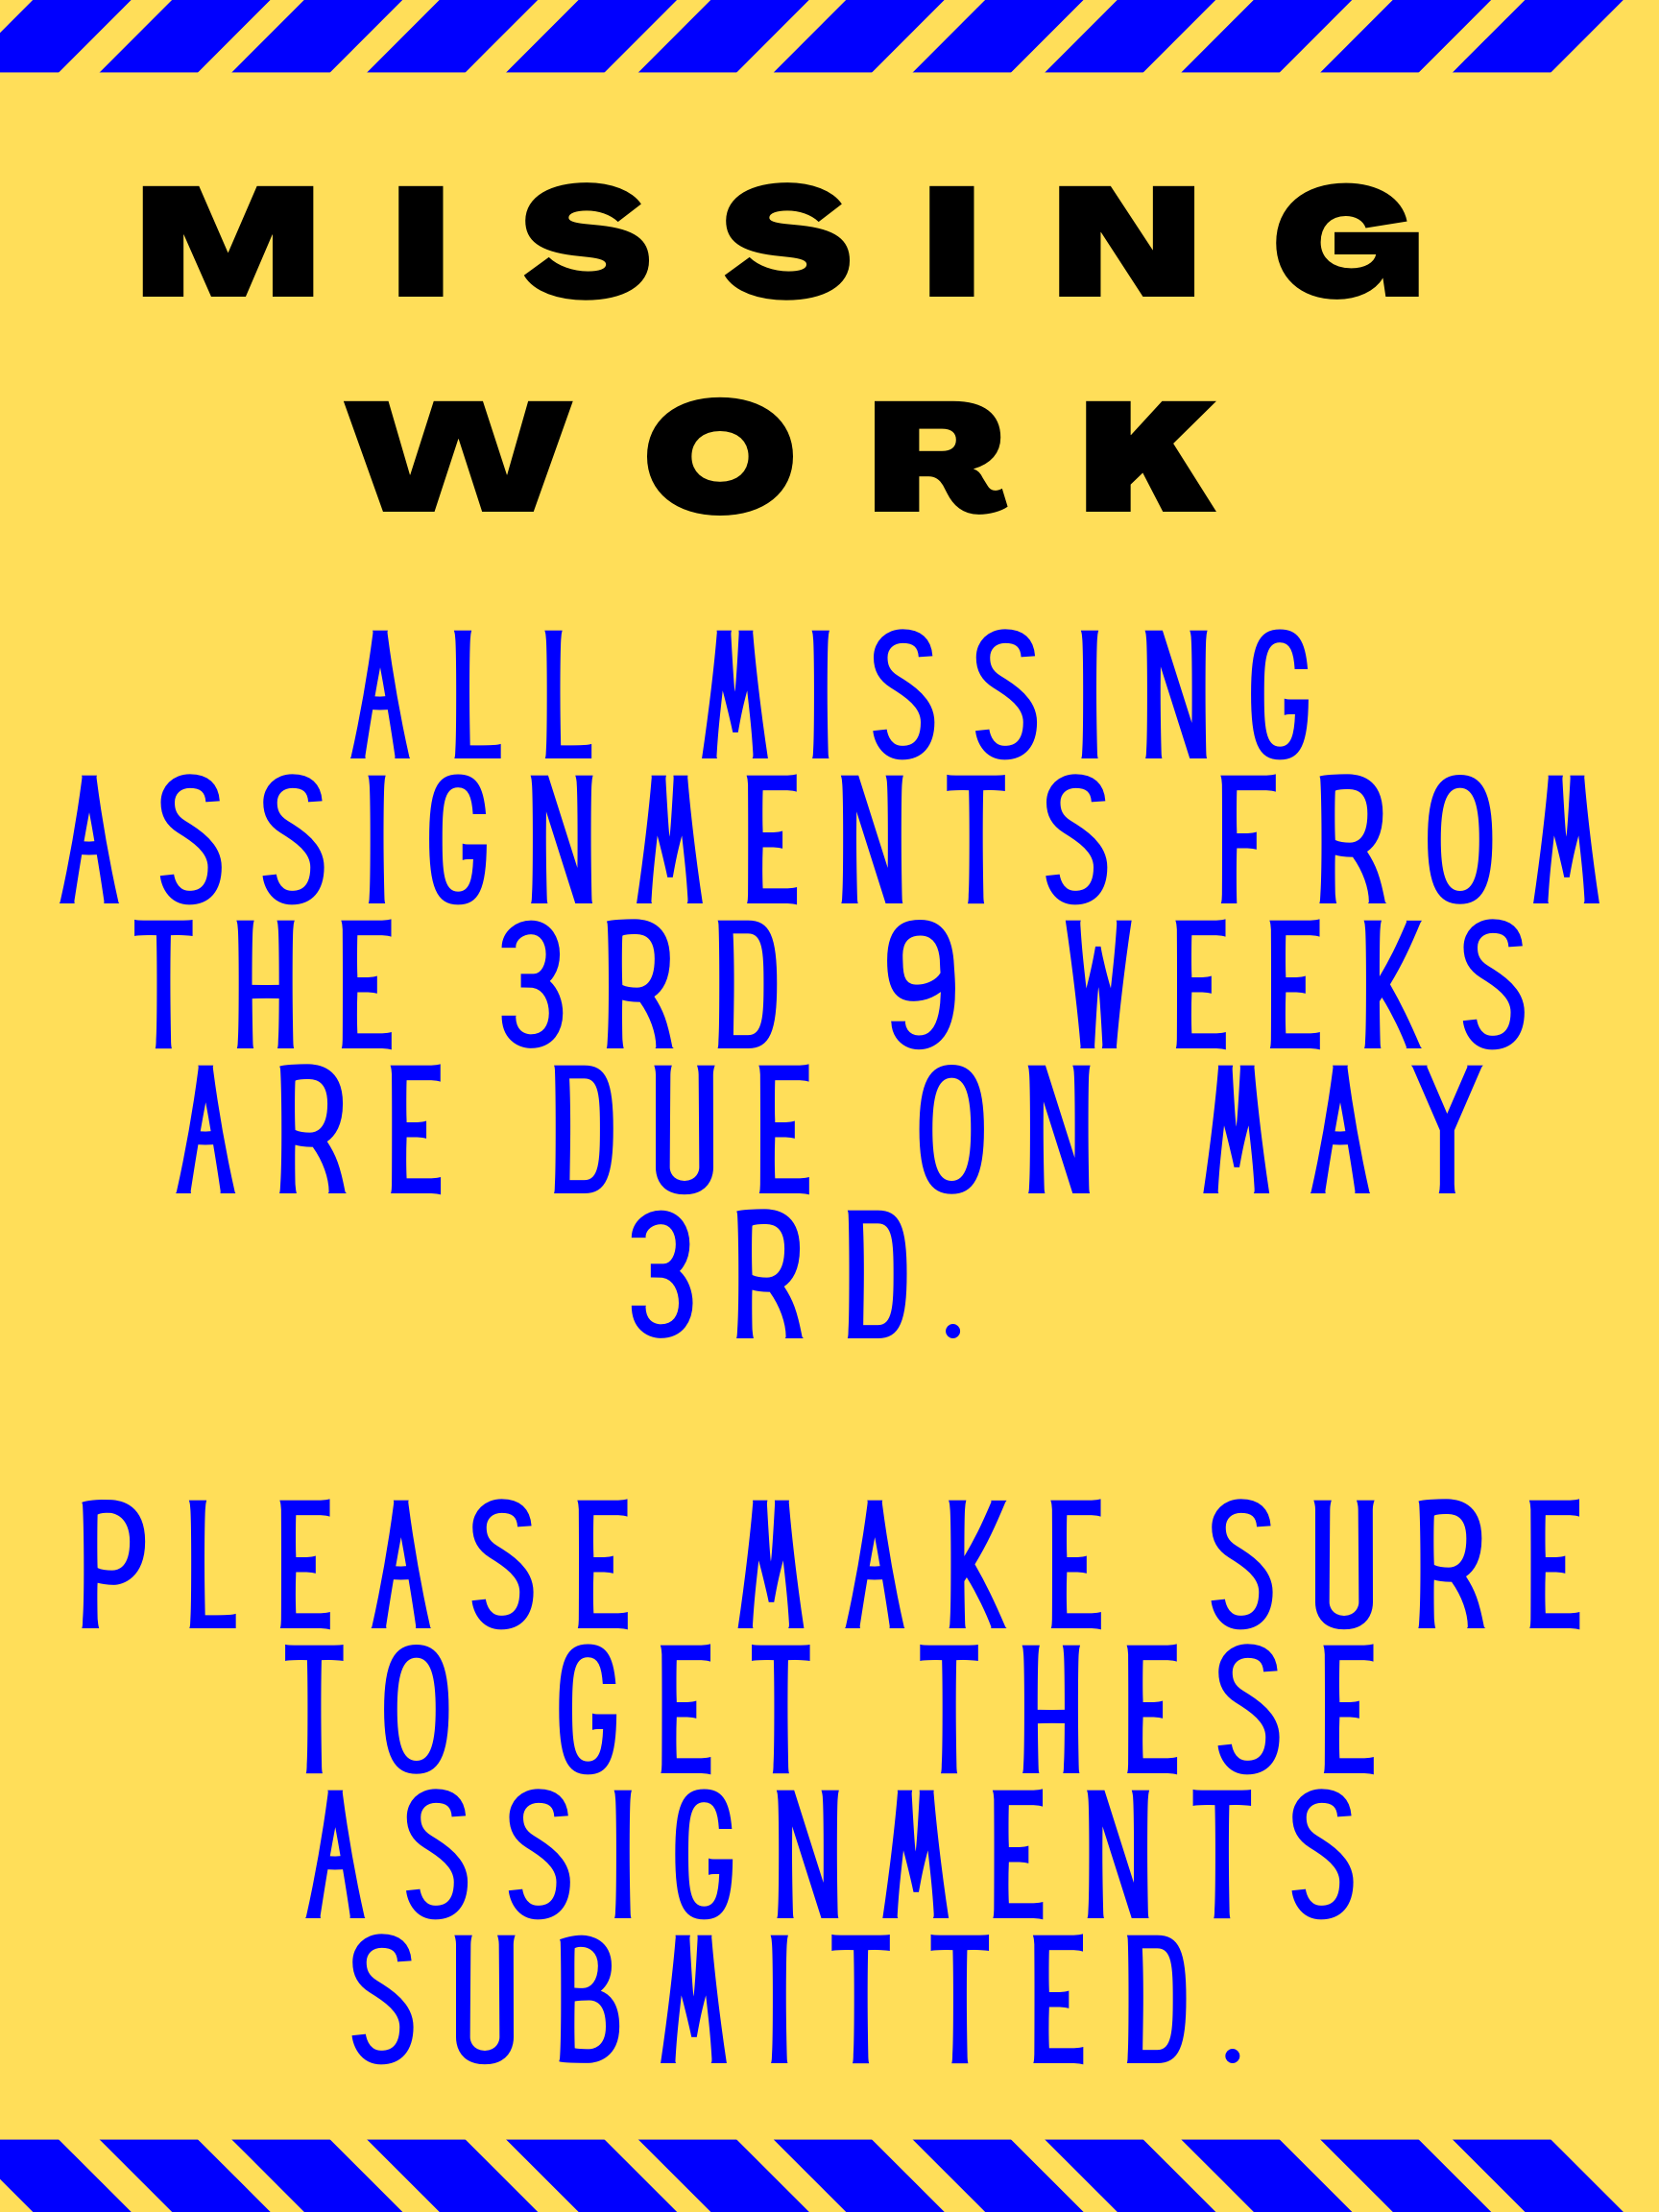 Attention Parents & Students - Missing Work Due May 3rd